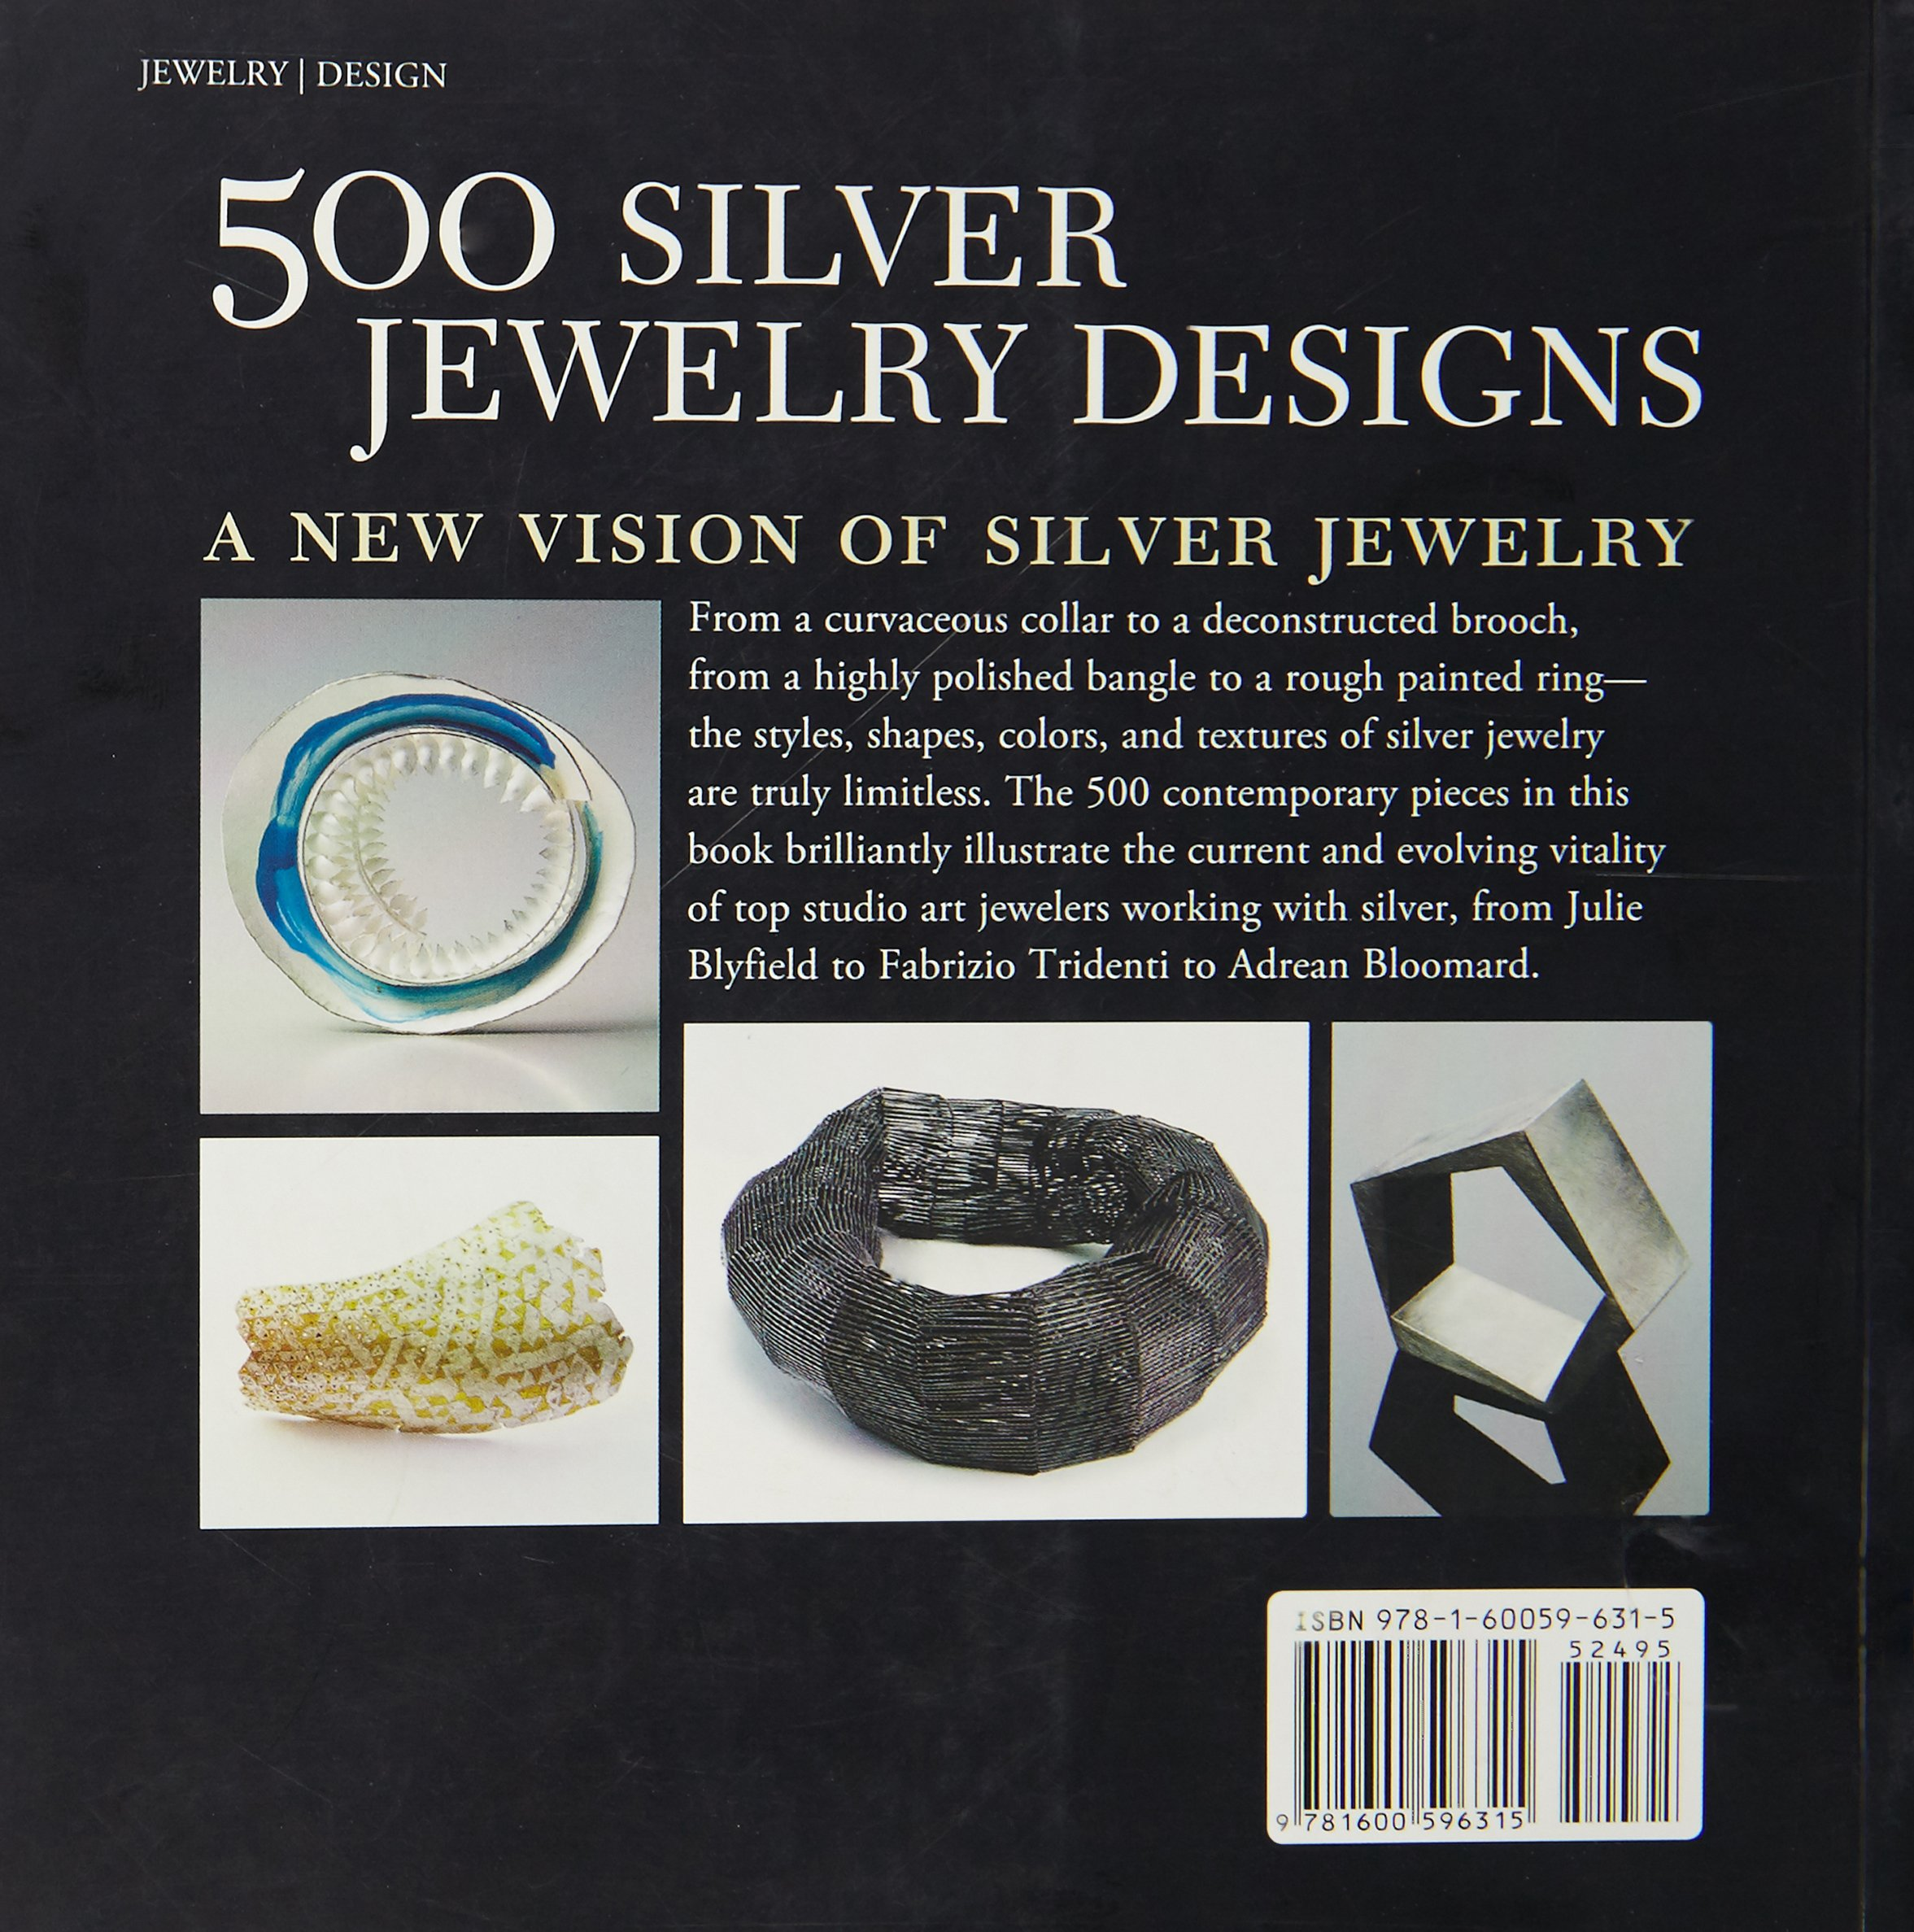 500 Silver Jewelry Designs: The Powerful Allure of a Precious Metal (500 Series) by Lark Books NC (Image #1)